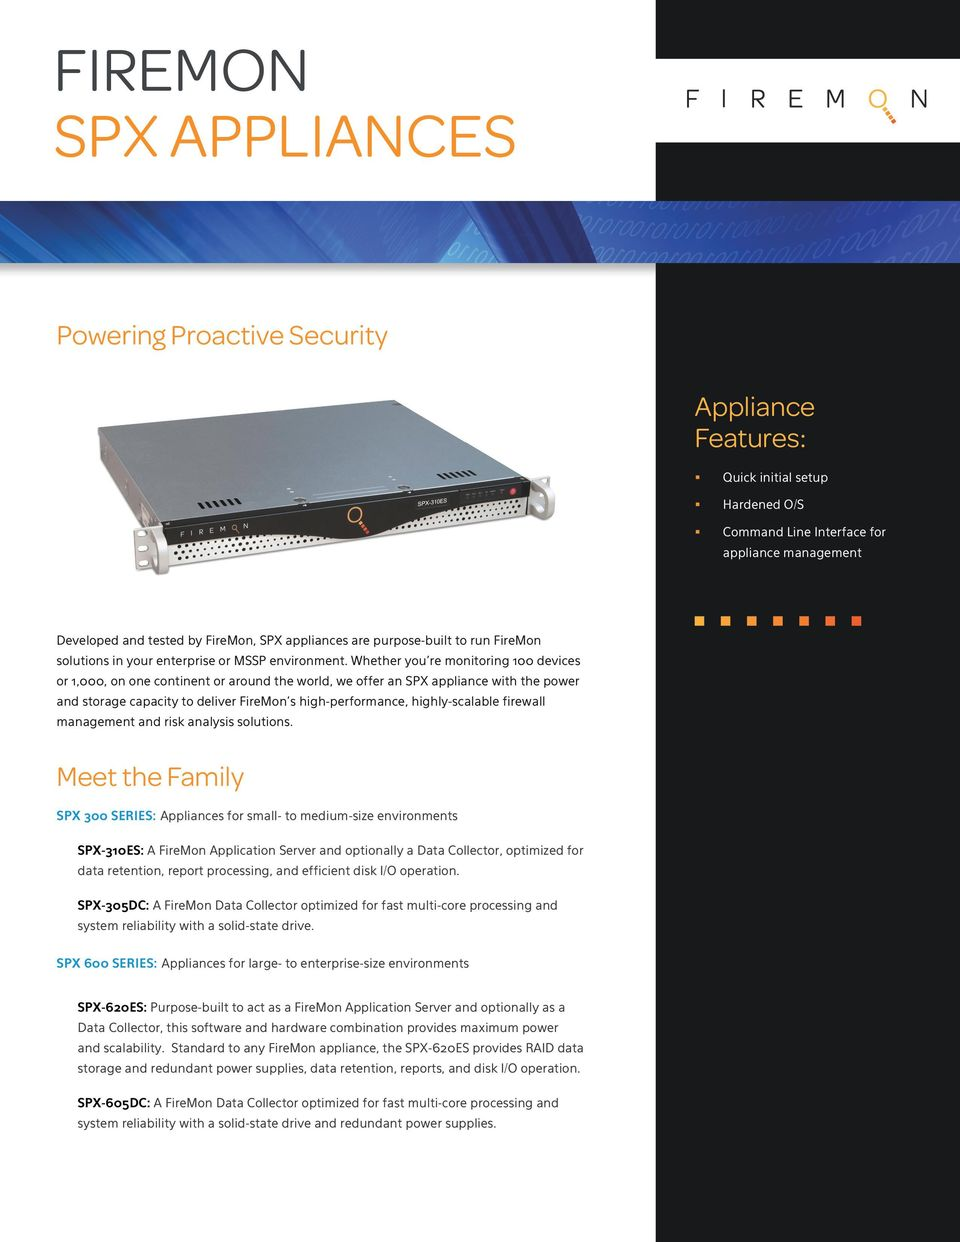 Whether you re monitoring 100 devices or 1,000, on one continent or around the world, we offer an SPX appliance with the power and storage capacity to deliver FireMon s high-performance,